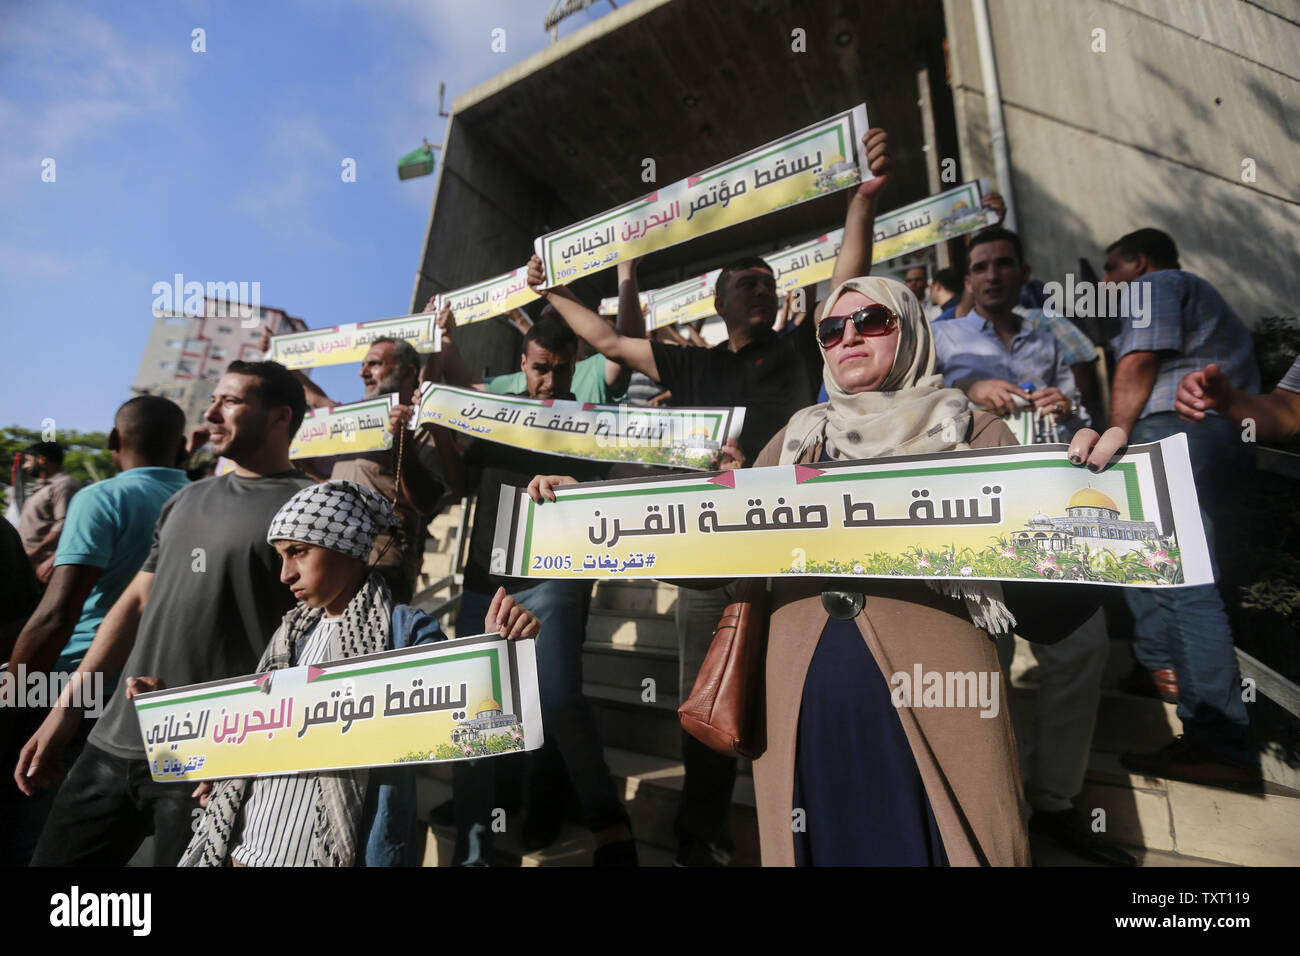 Gaza City, Palestinian Territories. 25th June, 2019. Palestinian hold placards as they take part in a protest against the US-sponsored conference on Palestinian economic development in Bahrain. The two-day meeting aims at raising 50 billion dollars in investment over 10 years, but Palestinian leaders' refusal to take part is casting serious doubt about the usefulness of the event, called Peace to Prosperity Workshop. Credit: Mohammed Talatene/dpa/Alamy Live News - Stock Image